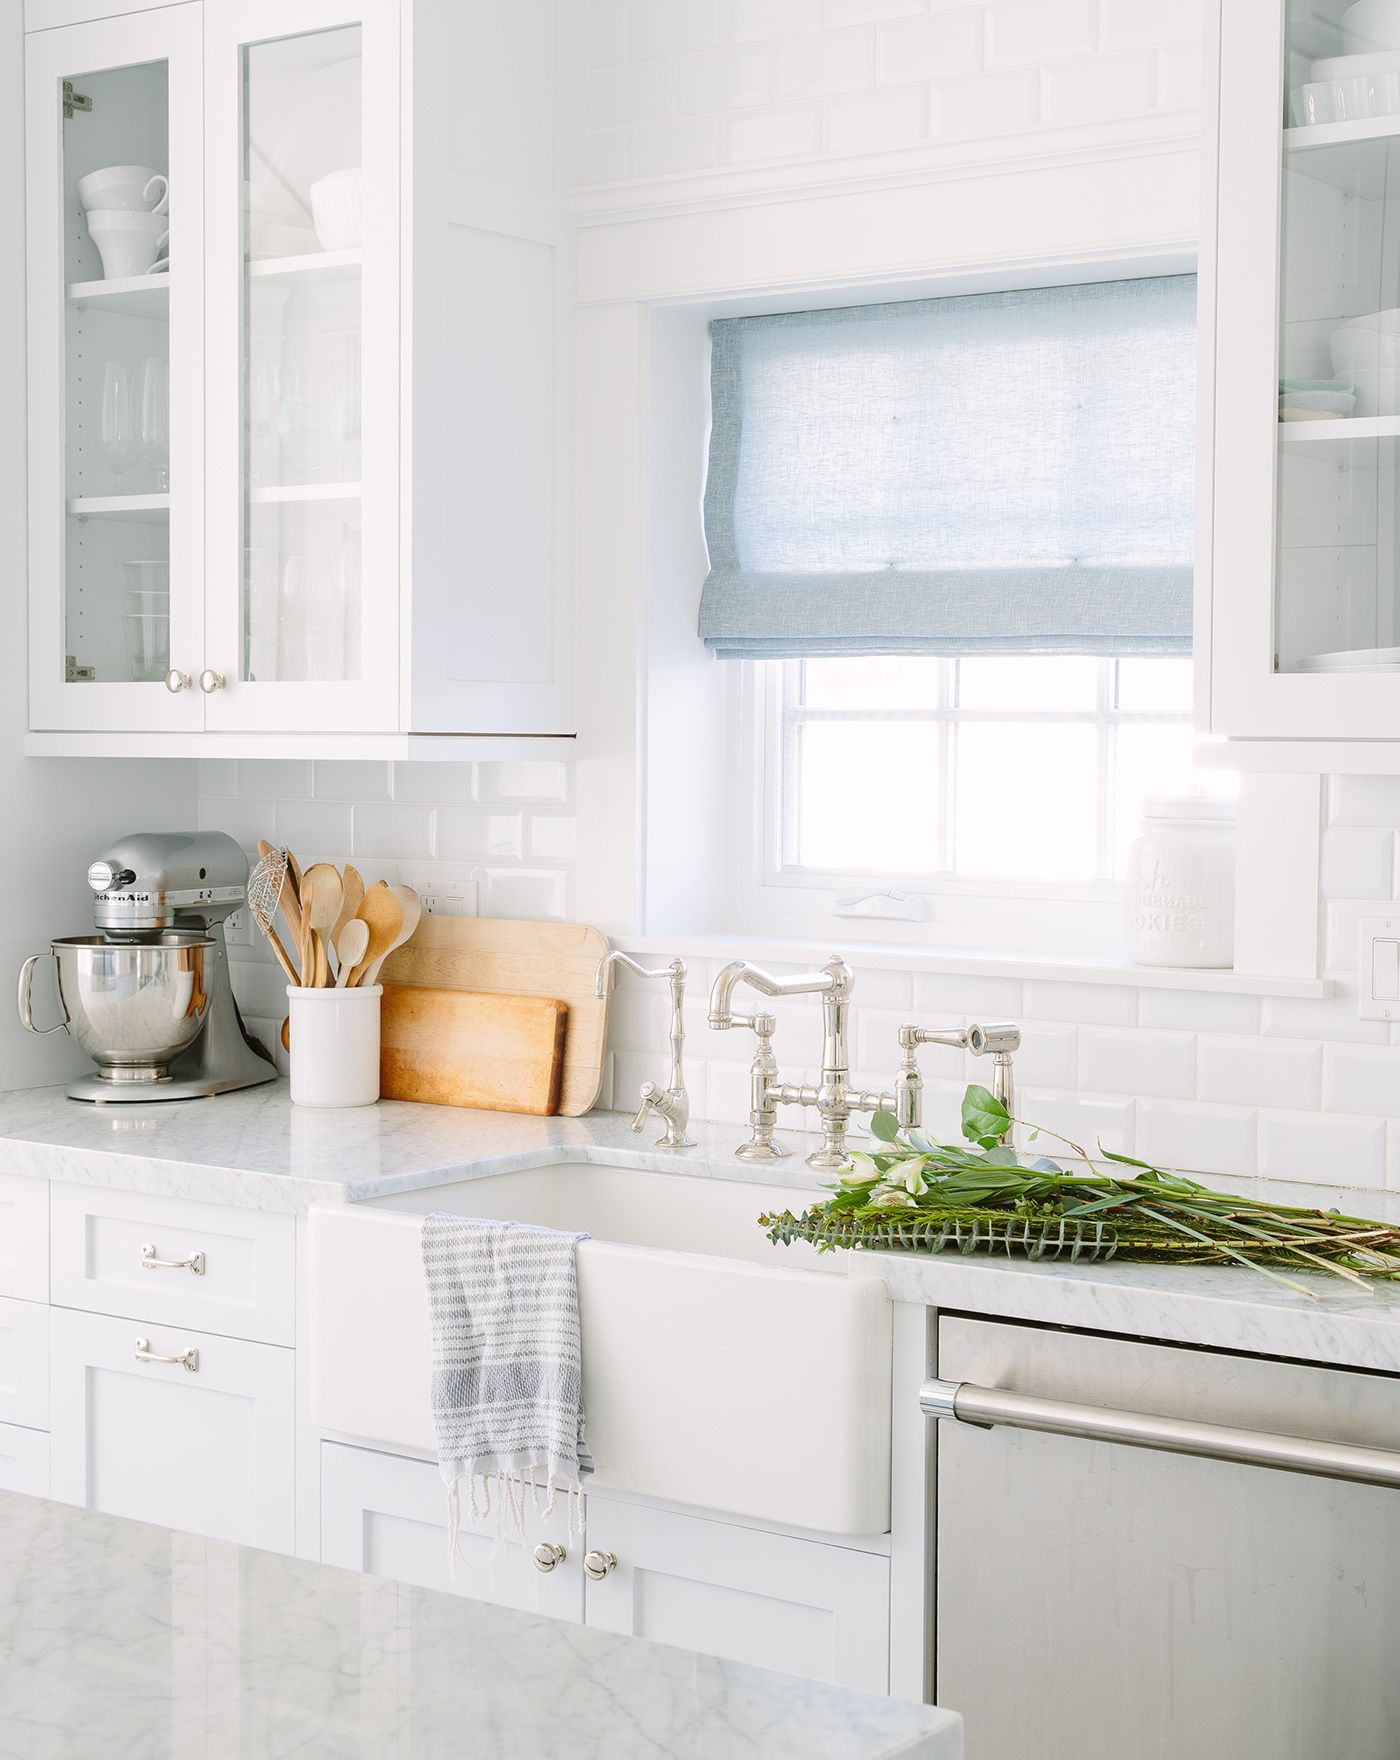 - TOP 5 KITCHEN TRENDS FOR 2017 (With Images) White Beveled Subway